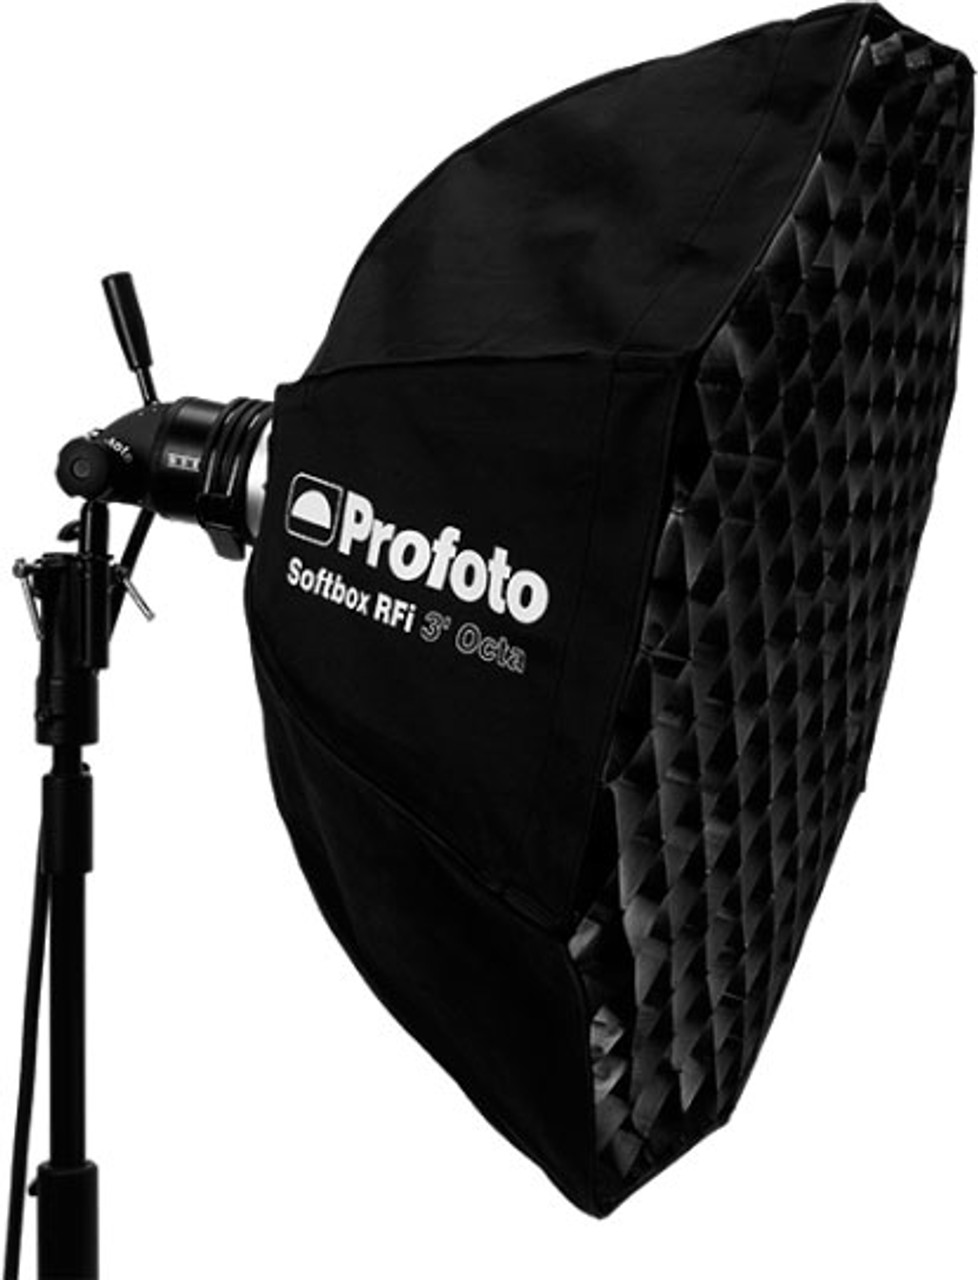 Profoto 50° Softgrid for 3.0' RFi Octa Softbox